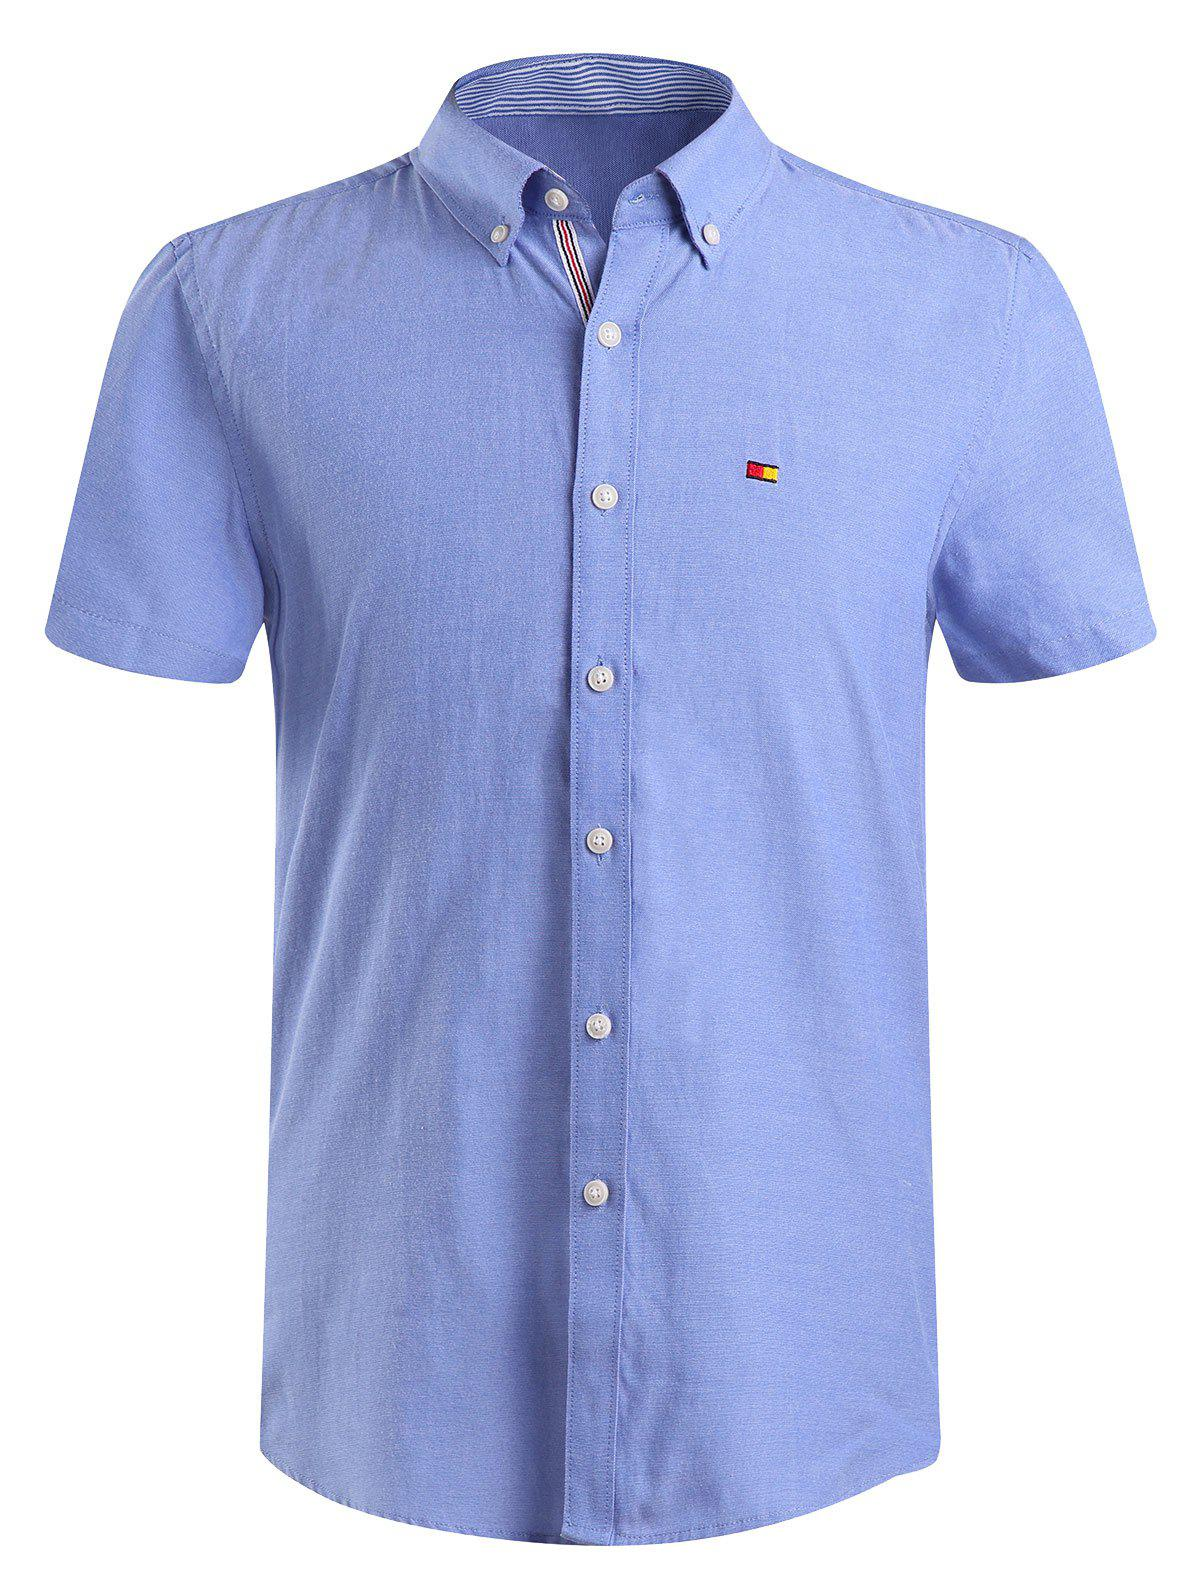 Men 39 s fashion solid color button down shirt blue xl in for Solid color button up shirts